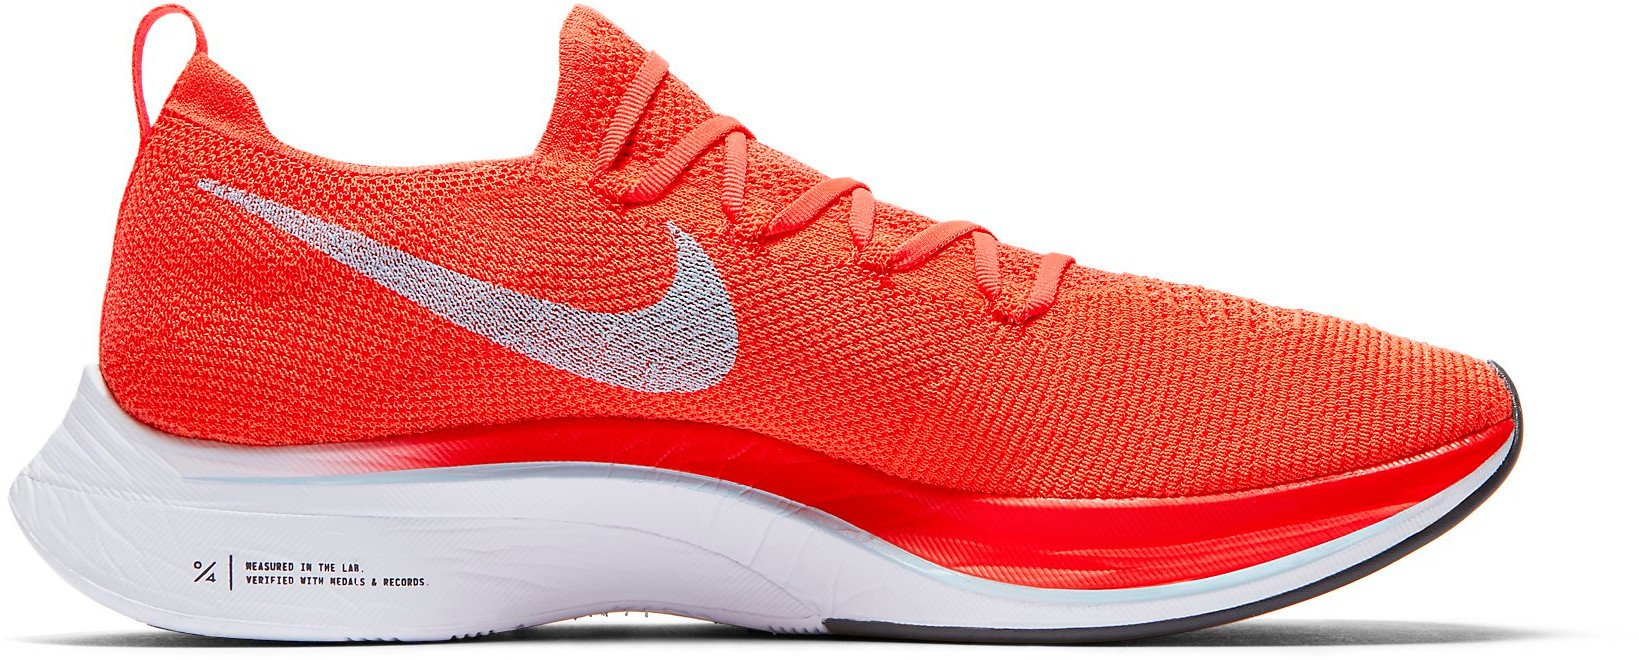 Running shoes Nike ZOOM VAPORFLY 4